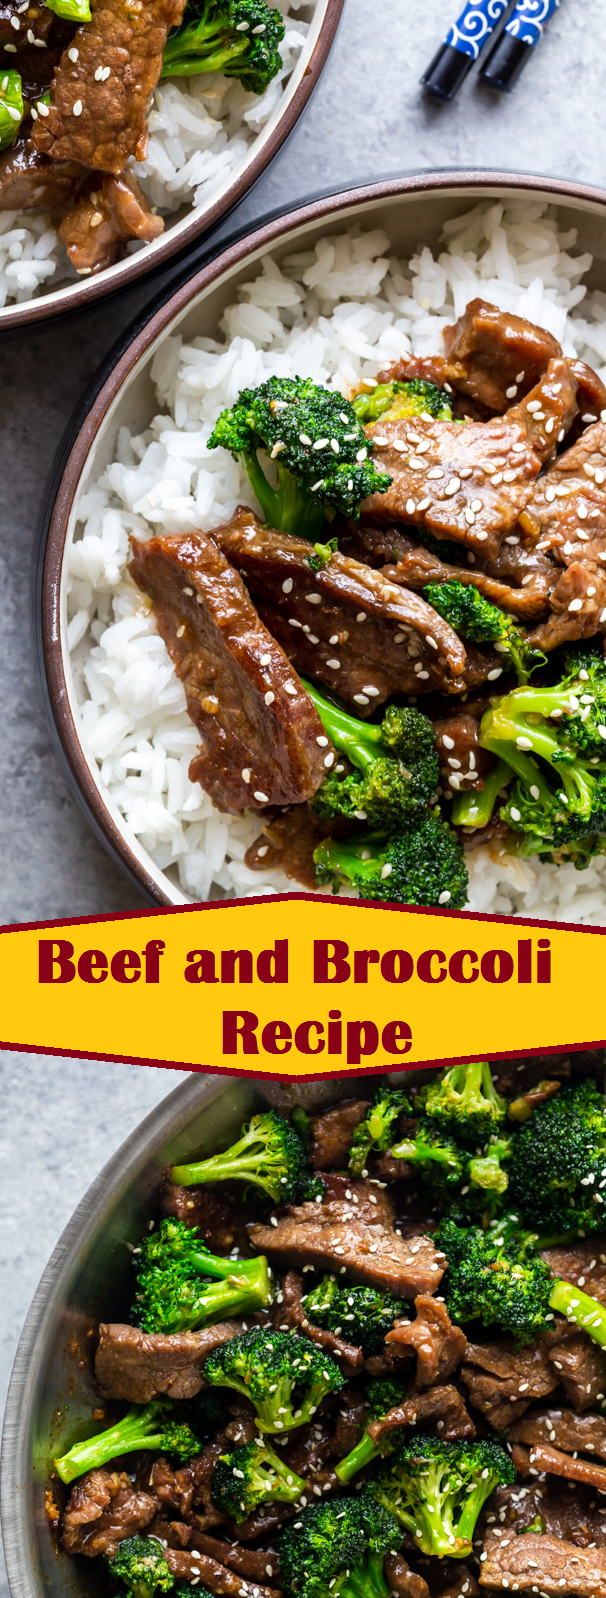 Beef and Broccoli Recipe |  #beef #beefandbroccoli